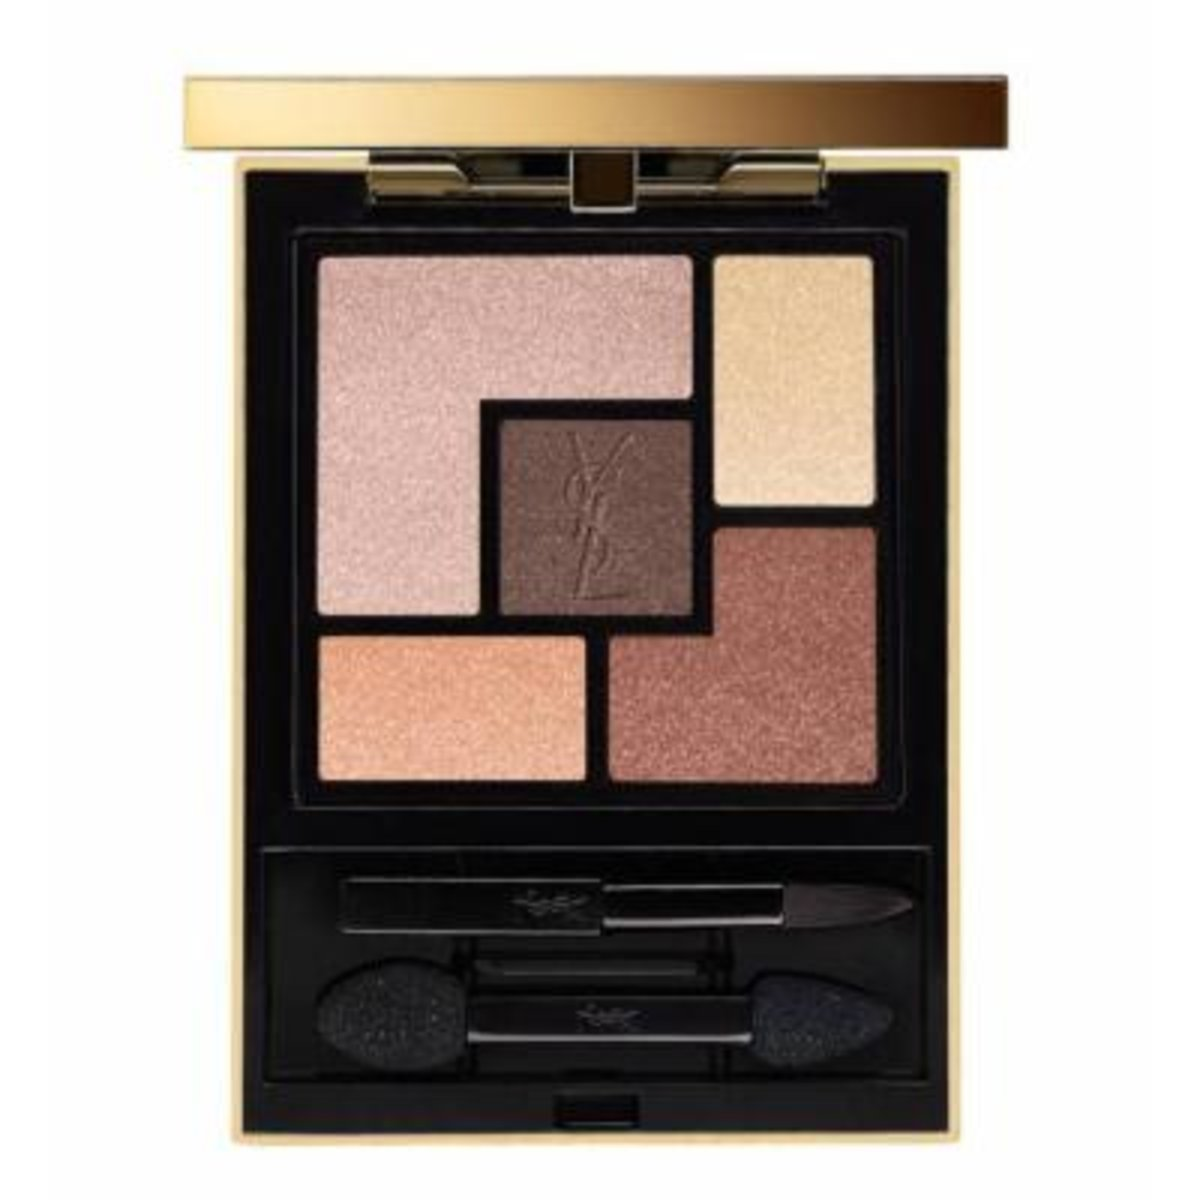 Couture Palettes 5g #14 [Parallel Import]